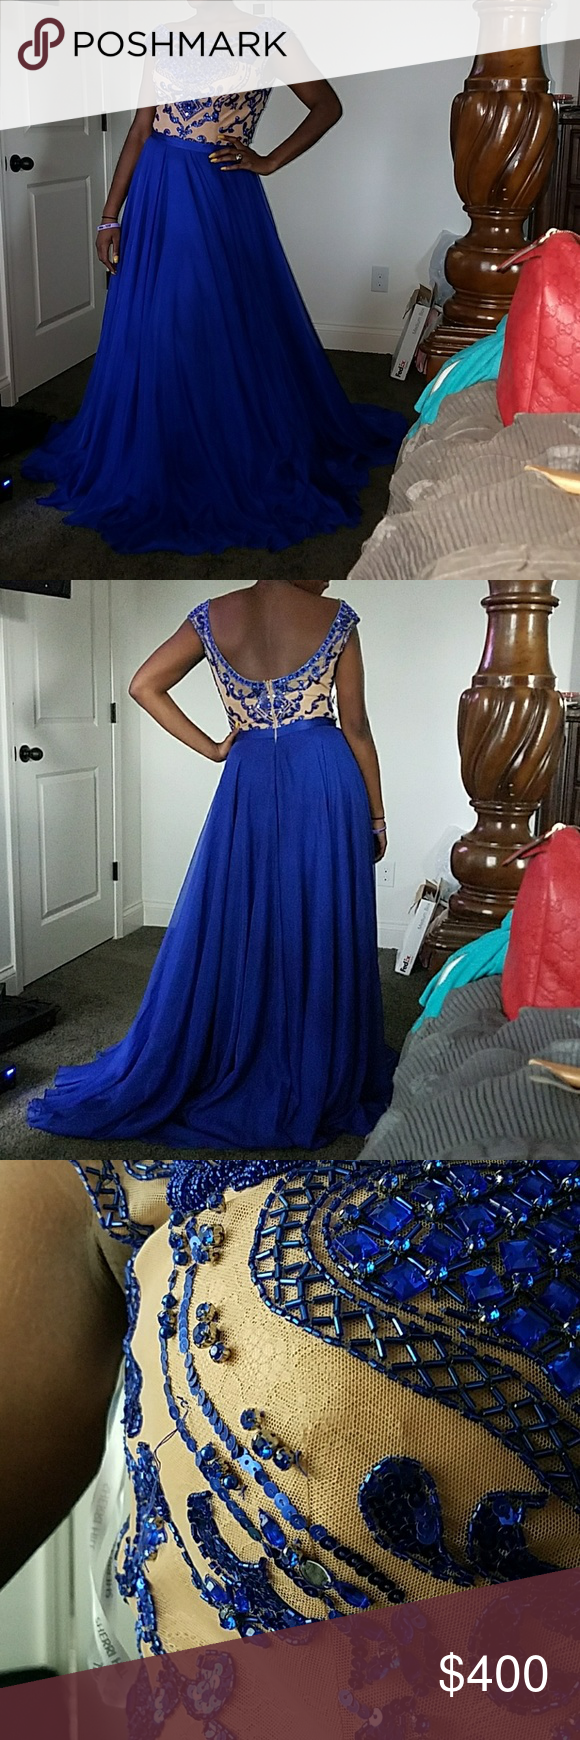 Prom dreds Gorgeous Sherri Hill prom dress!!   Worn only for a few hours.  Size 14  Great for prom 2017. Royal blue and nude Sherri Hill Dresses Prom